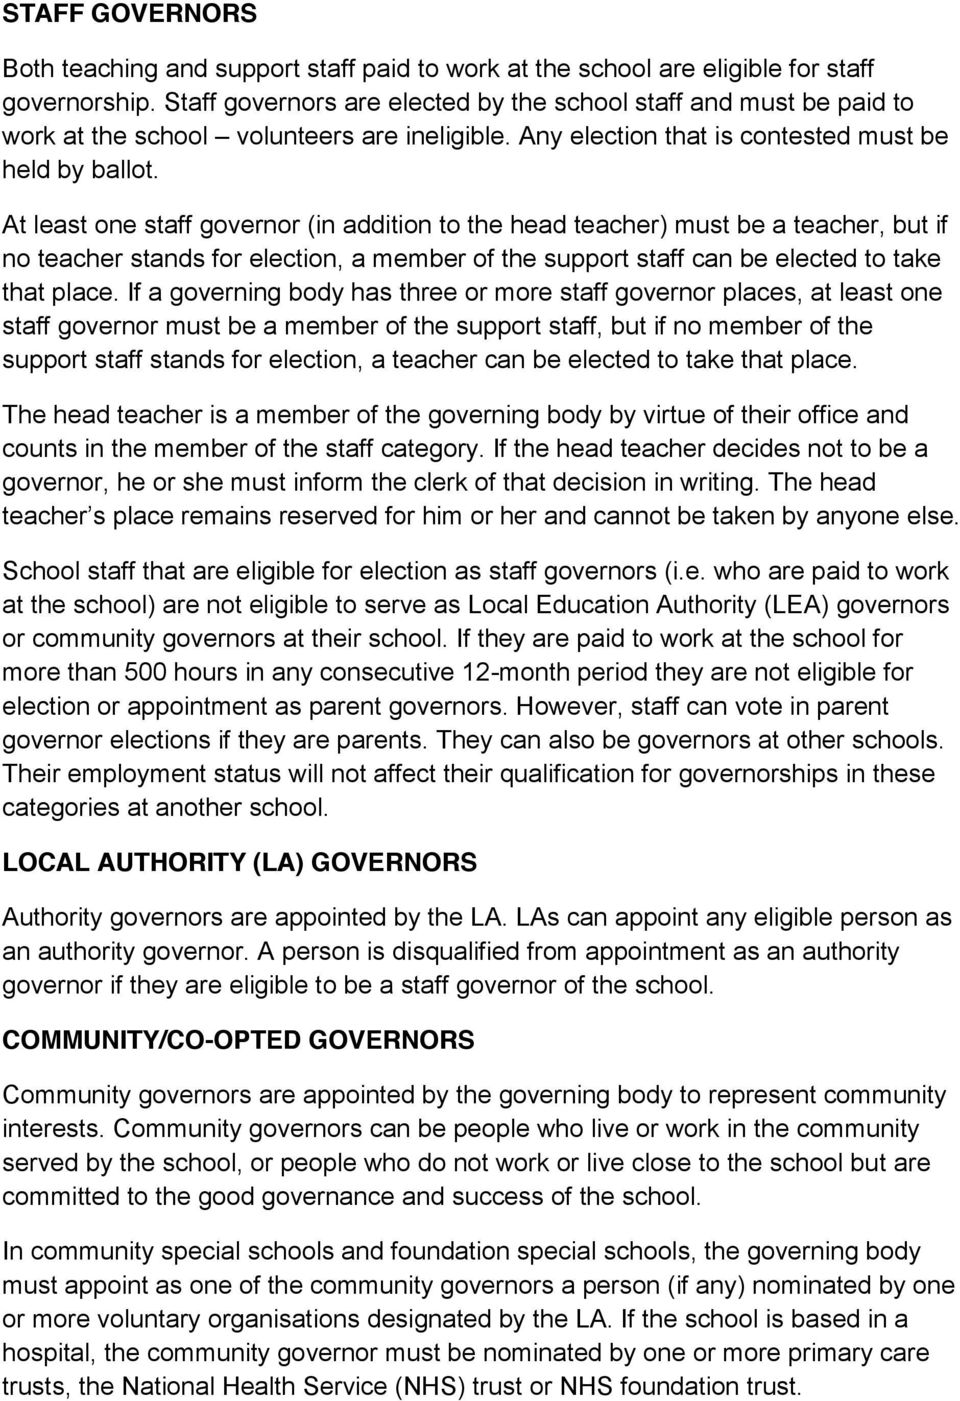 At least one staff governor (in addition to the head teacher) must be a teacher, but if no teacher stands for election, a member of the support staff can be elected to take that place.